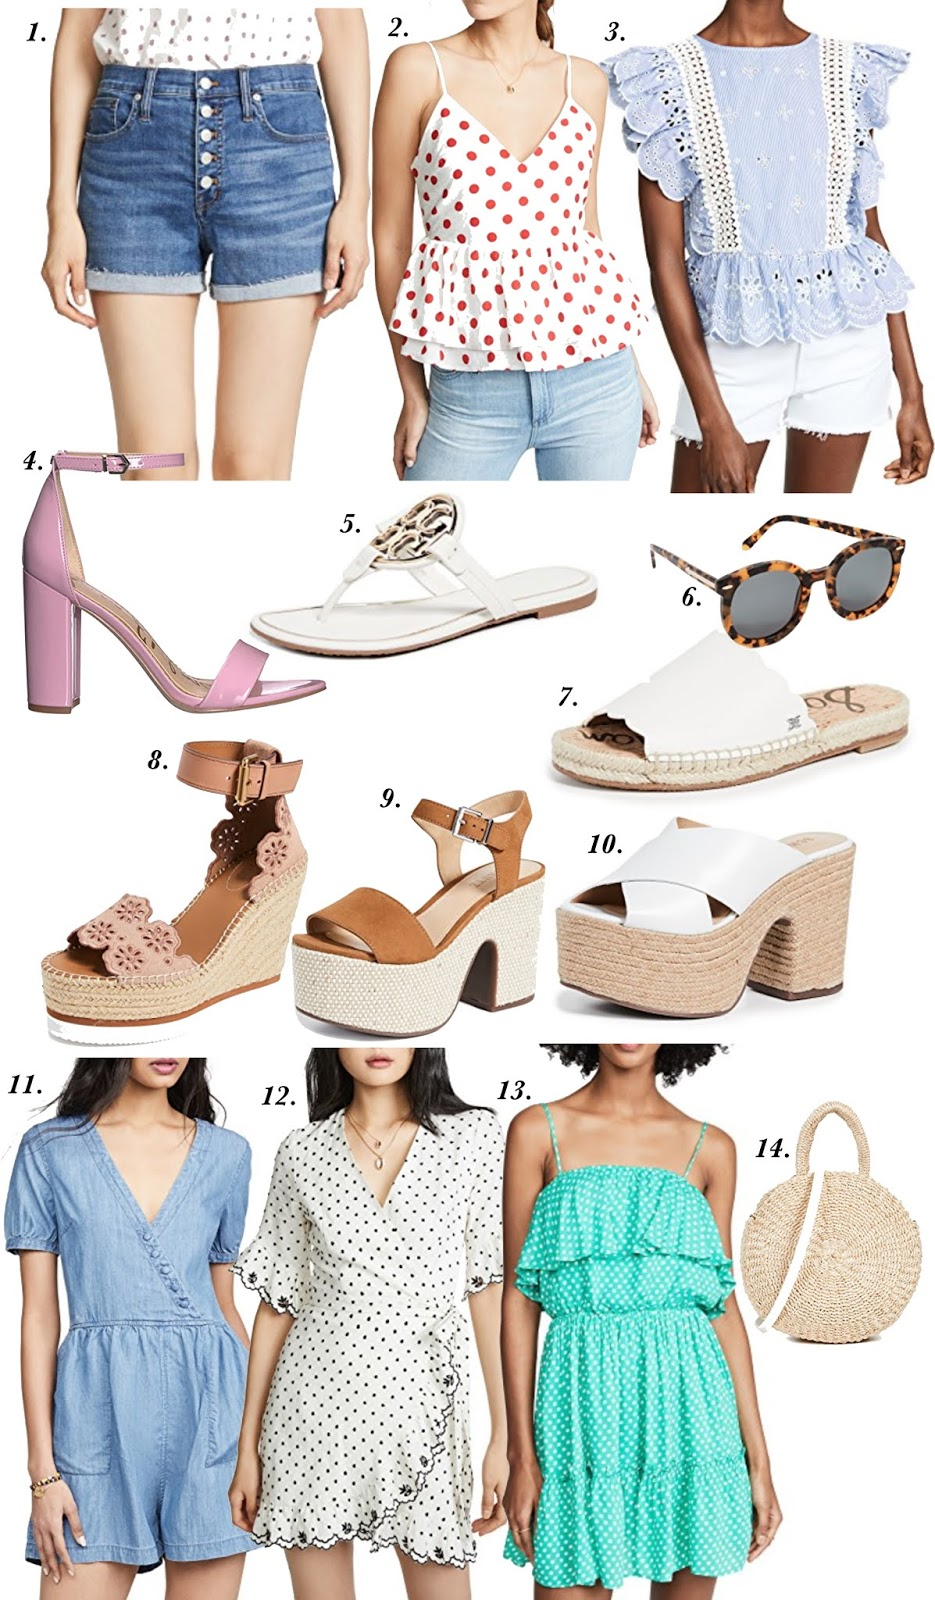 Shopbop Spring Event: My Picks + Purchases - Something Delightful Blog